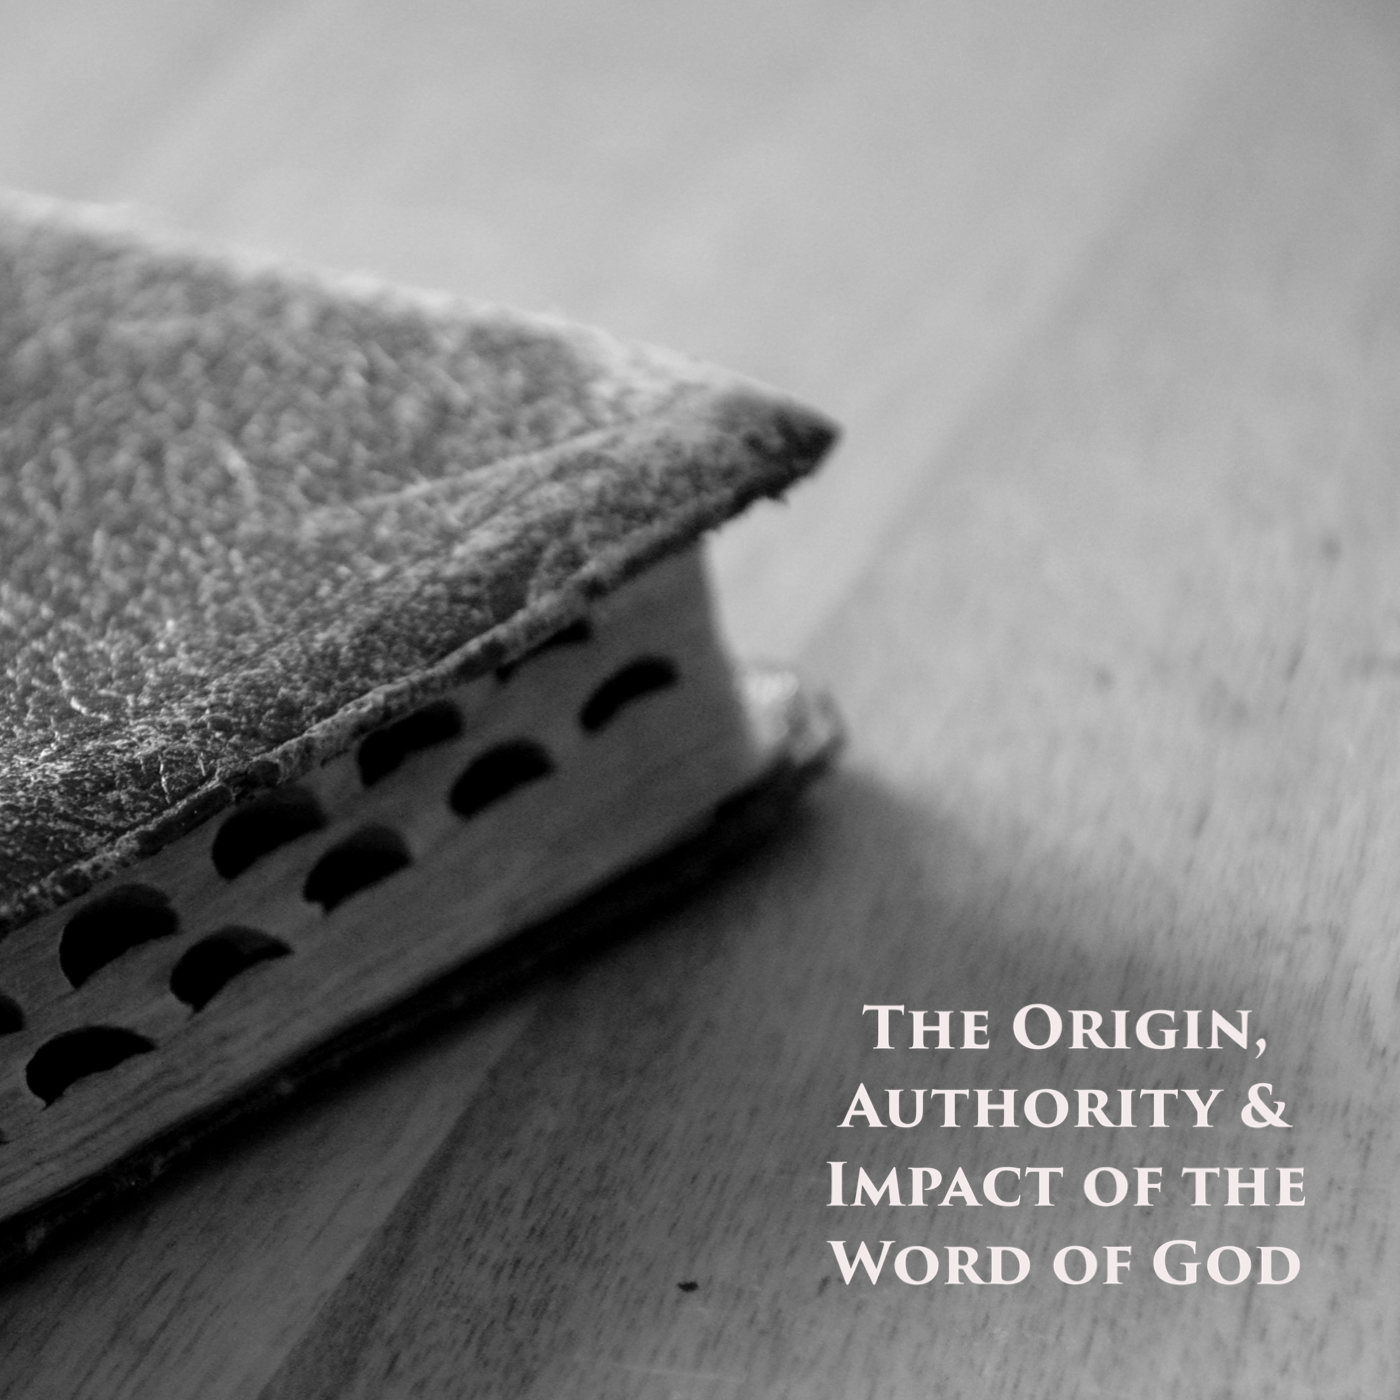 The Origin, Authority, and Impact of the Word of God